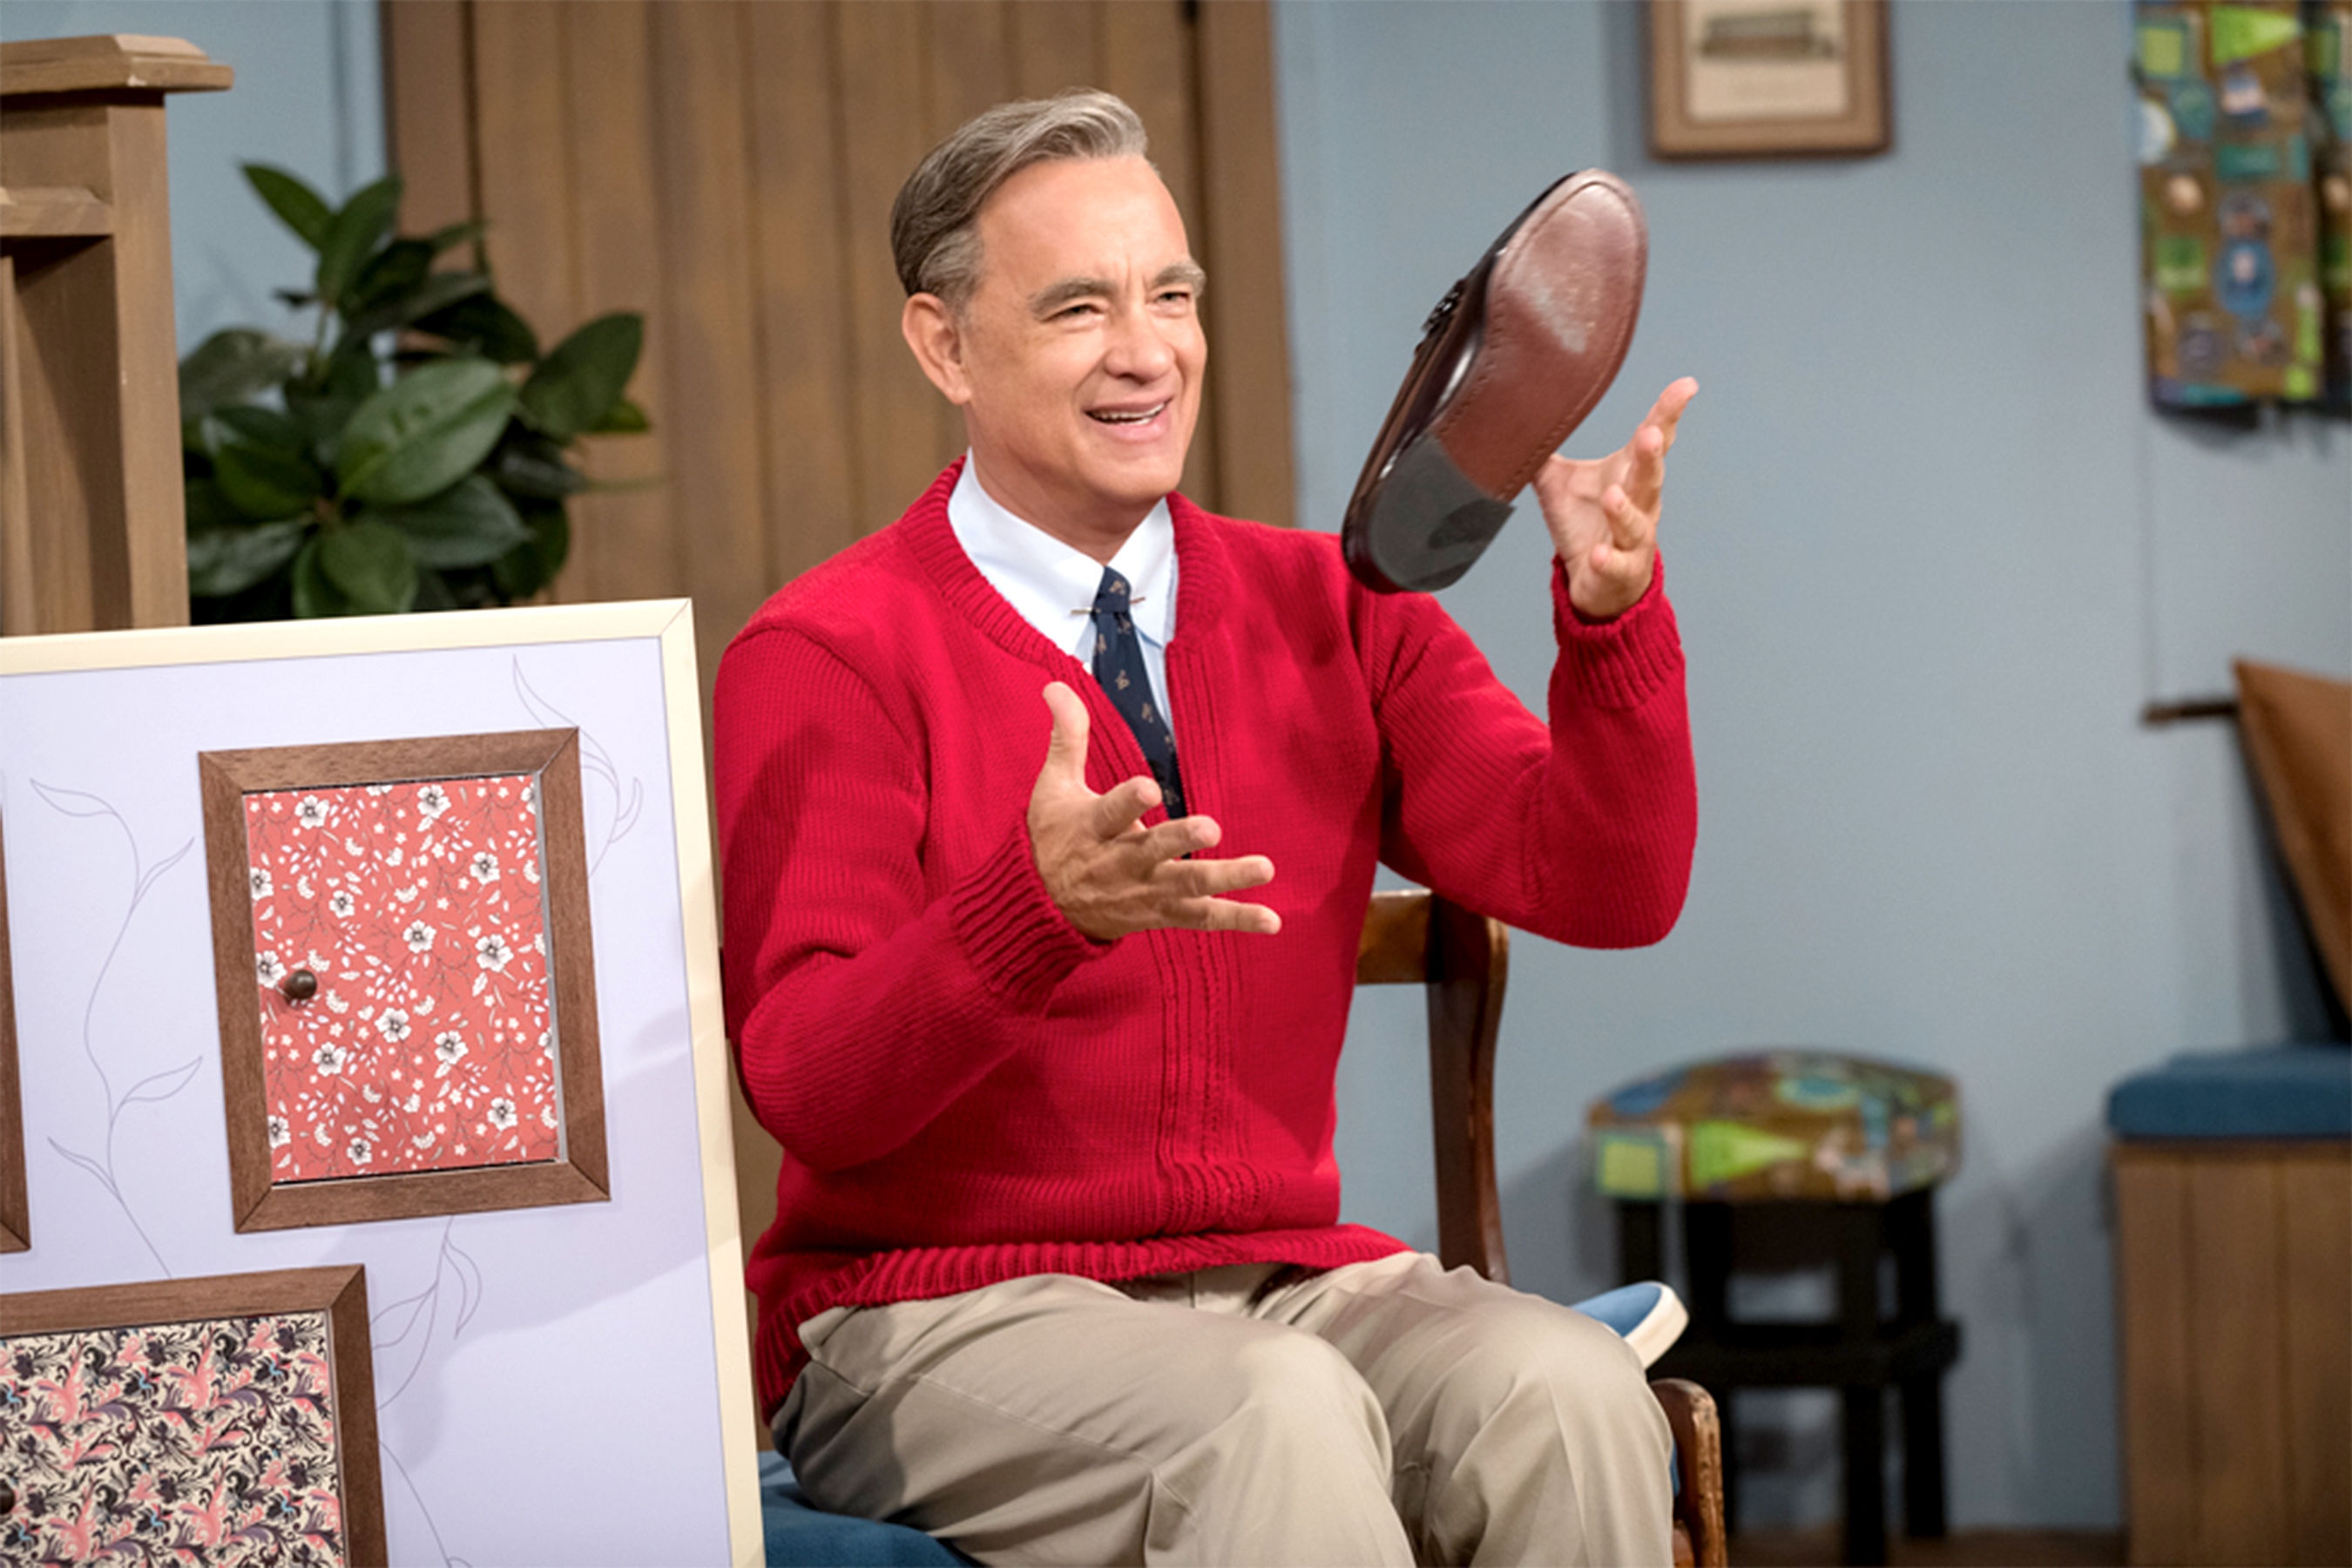 Tom Hanks Looks Just Like Mr. Rogers in New Photo from A Beautiful Day in the Neighborhood